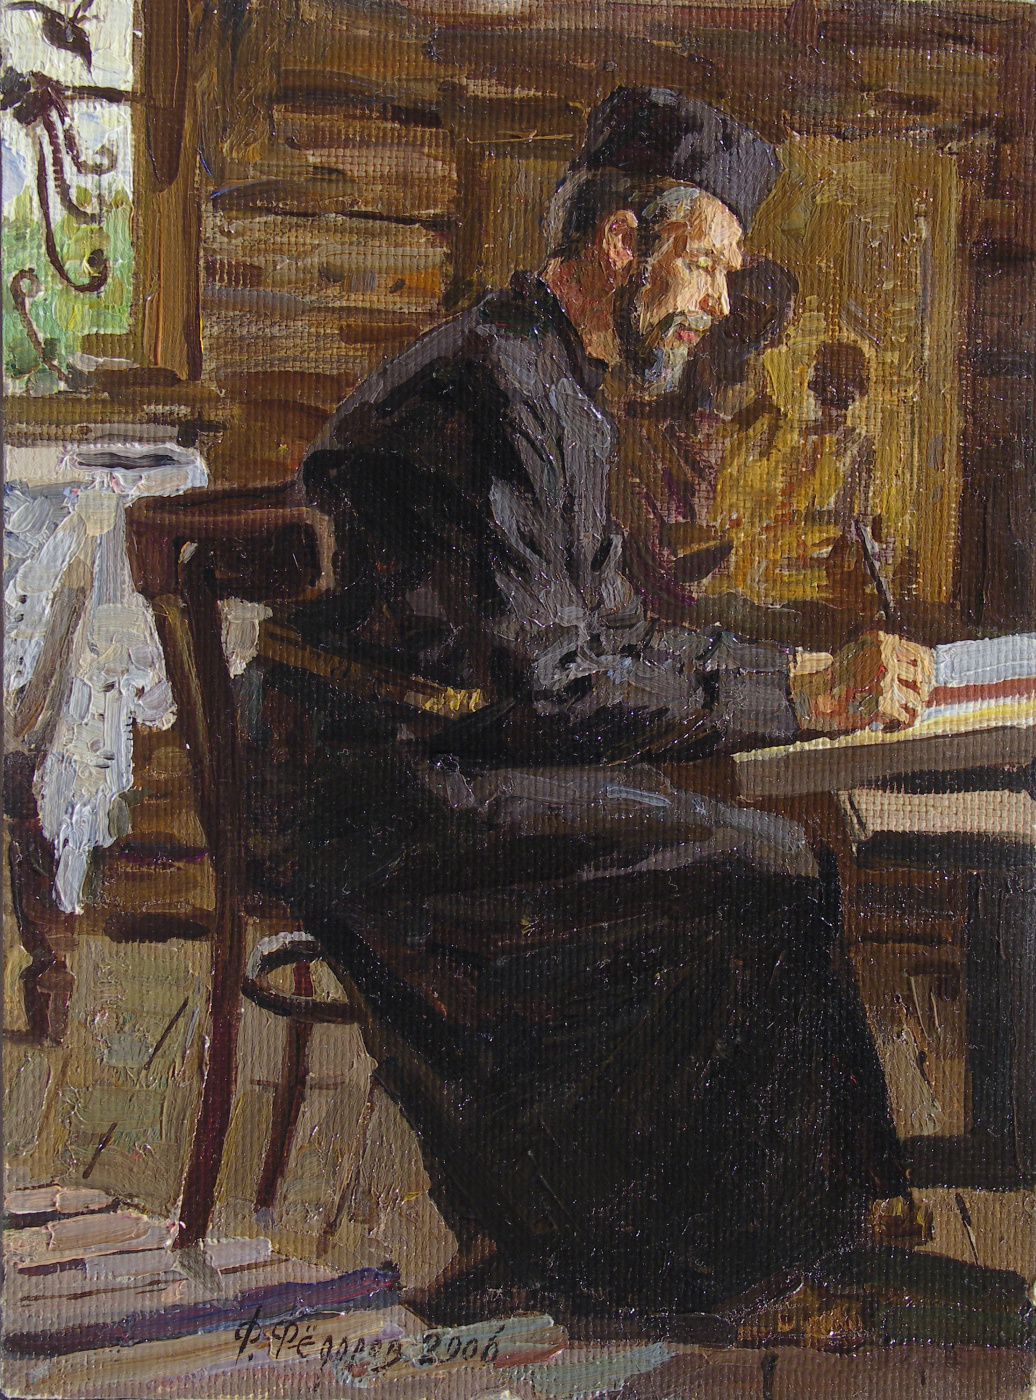 Фёдор Борисович Фёдоров. Icon painter